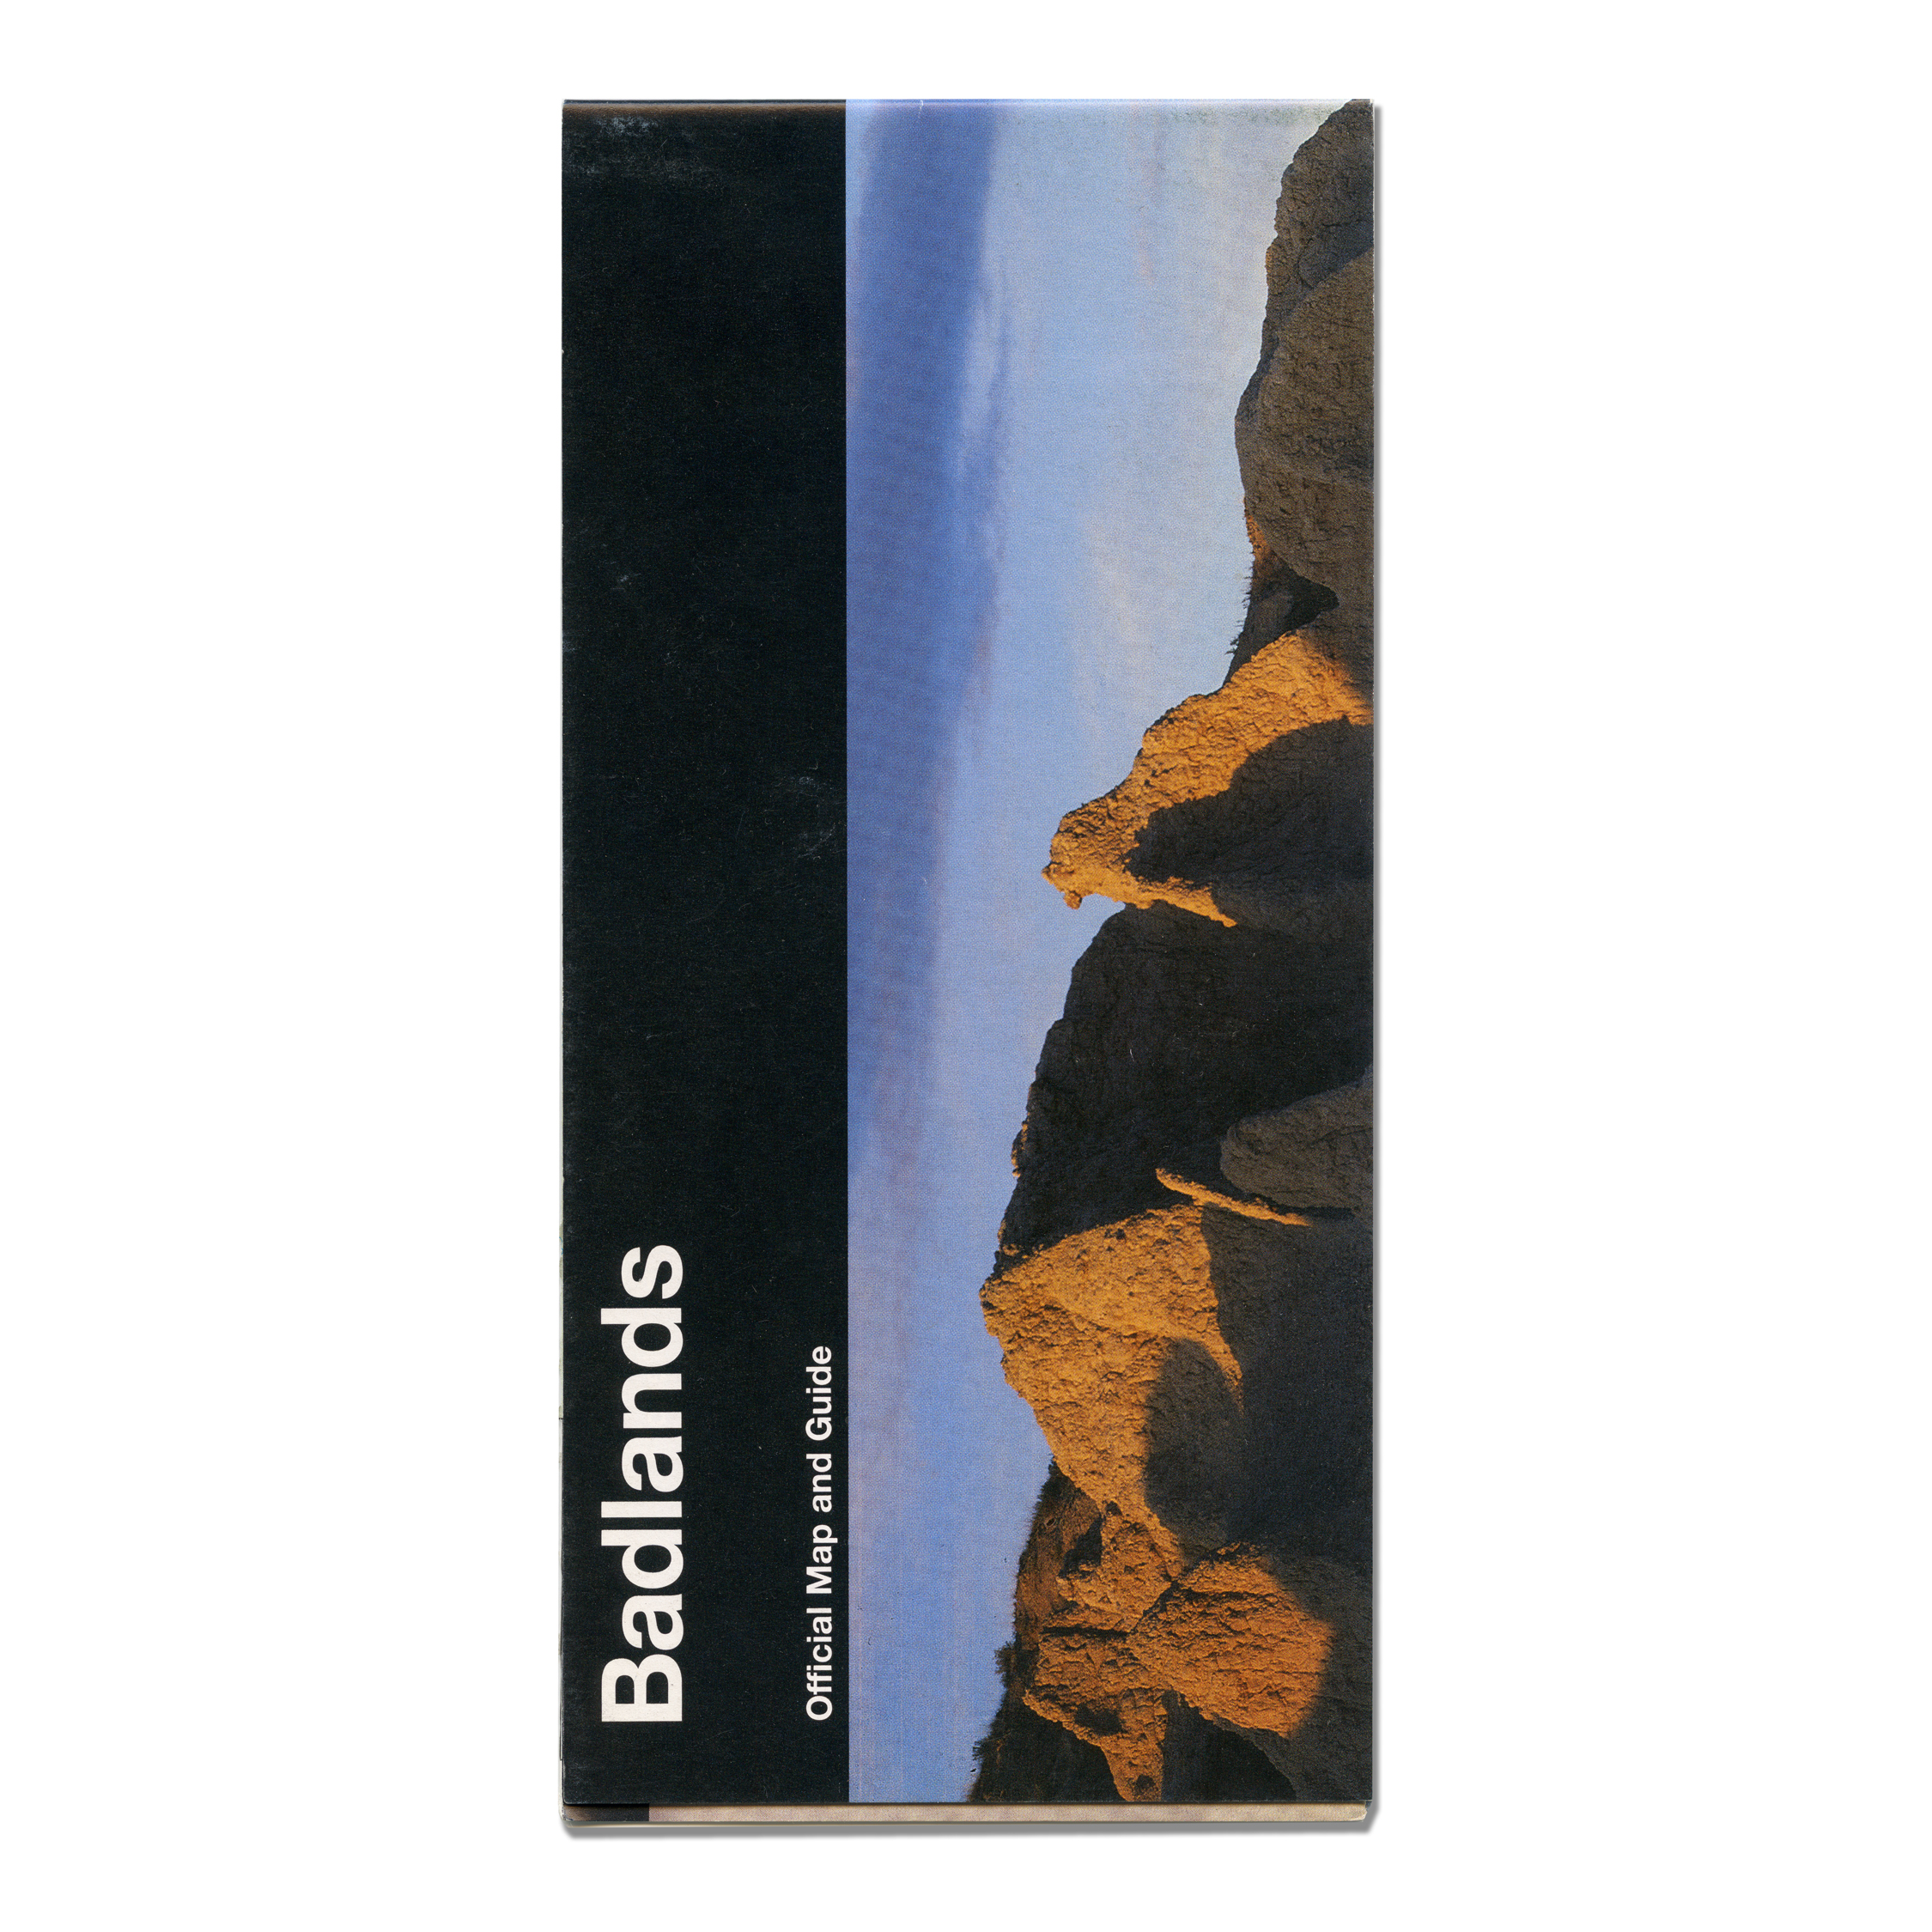 1987_badlands_national_park_brochure.jpg